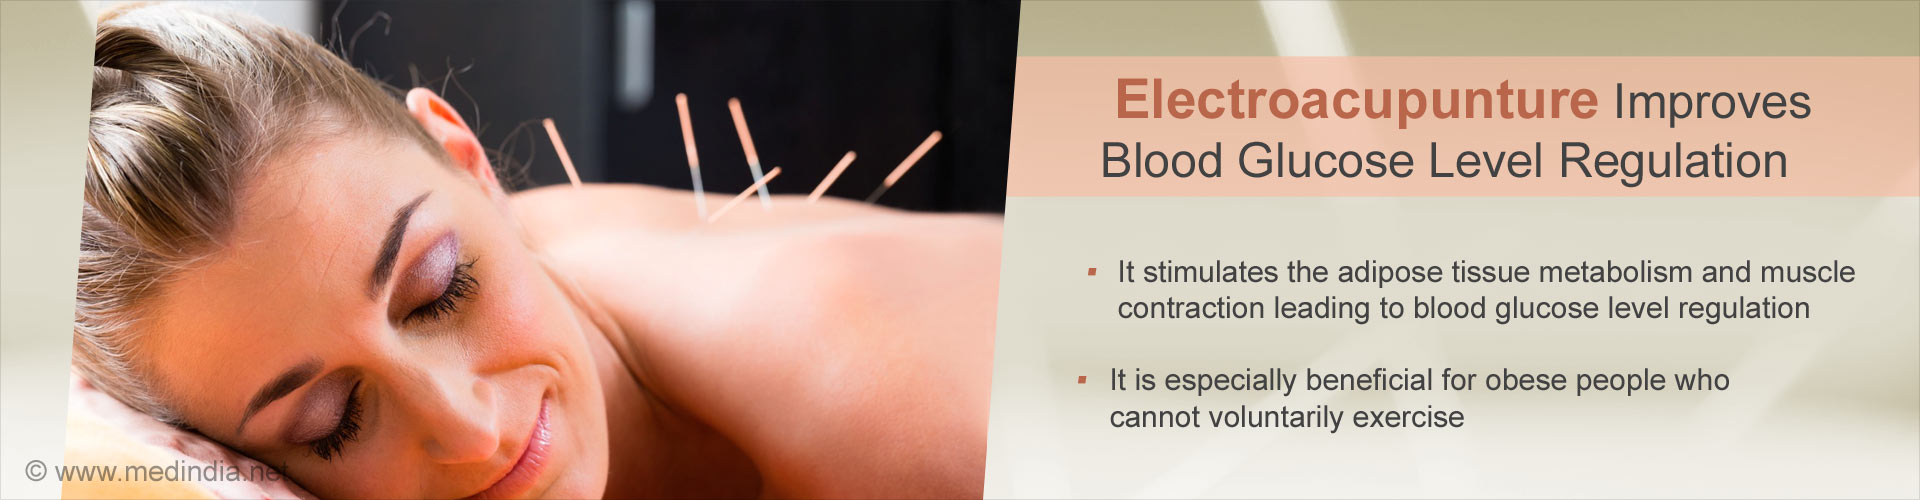 Electroacupuncture Regulates Blood Sugar Levels in Obese Women